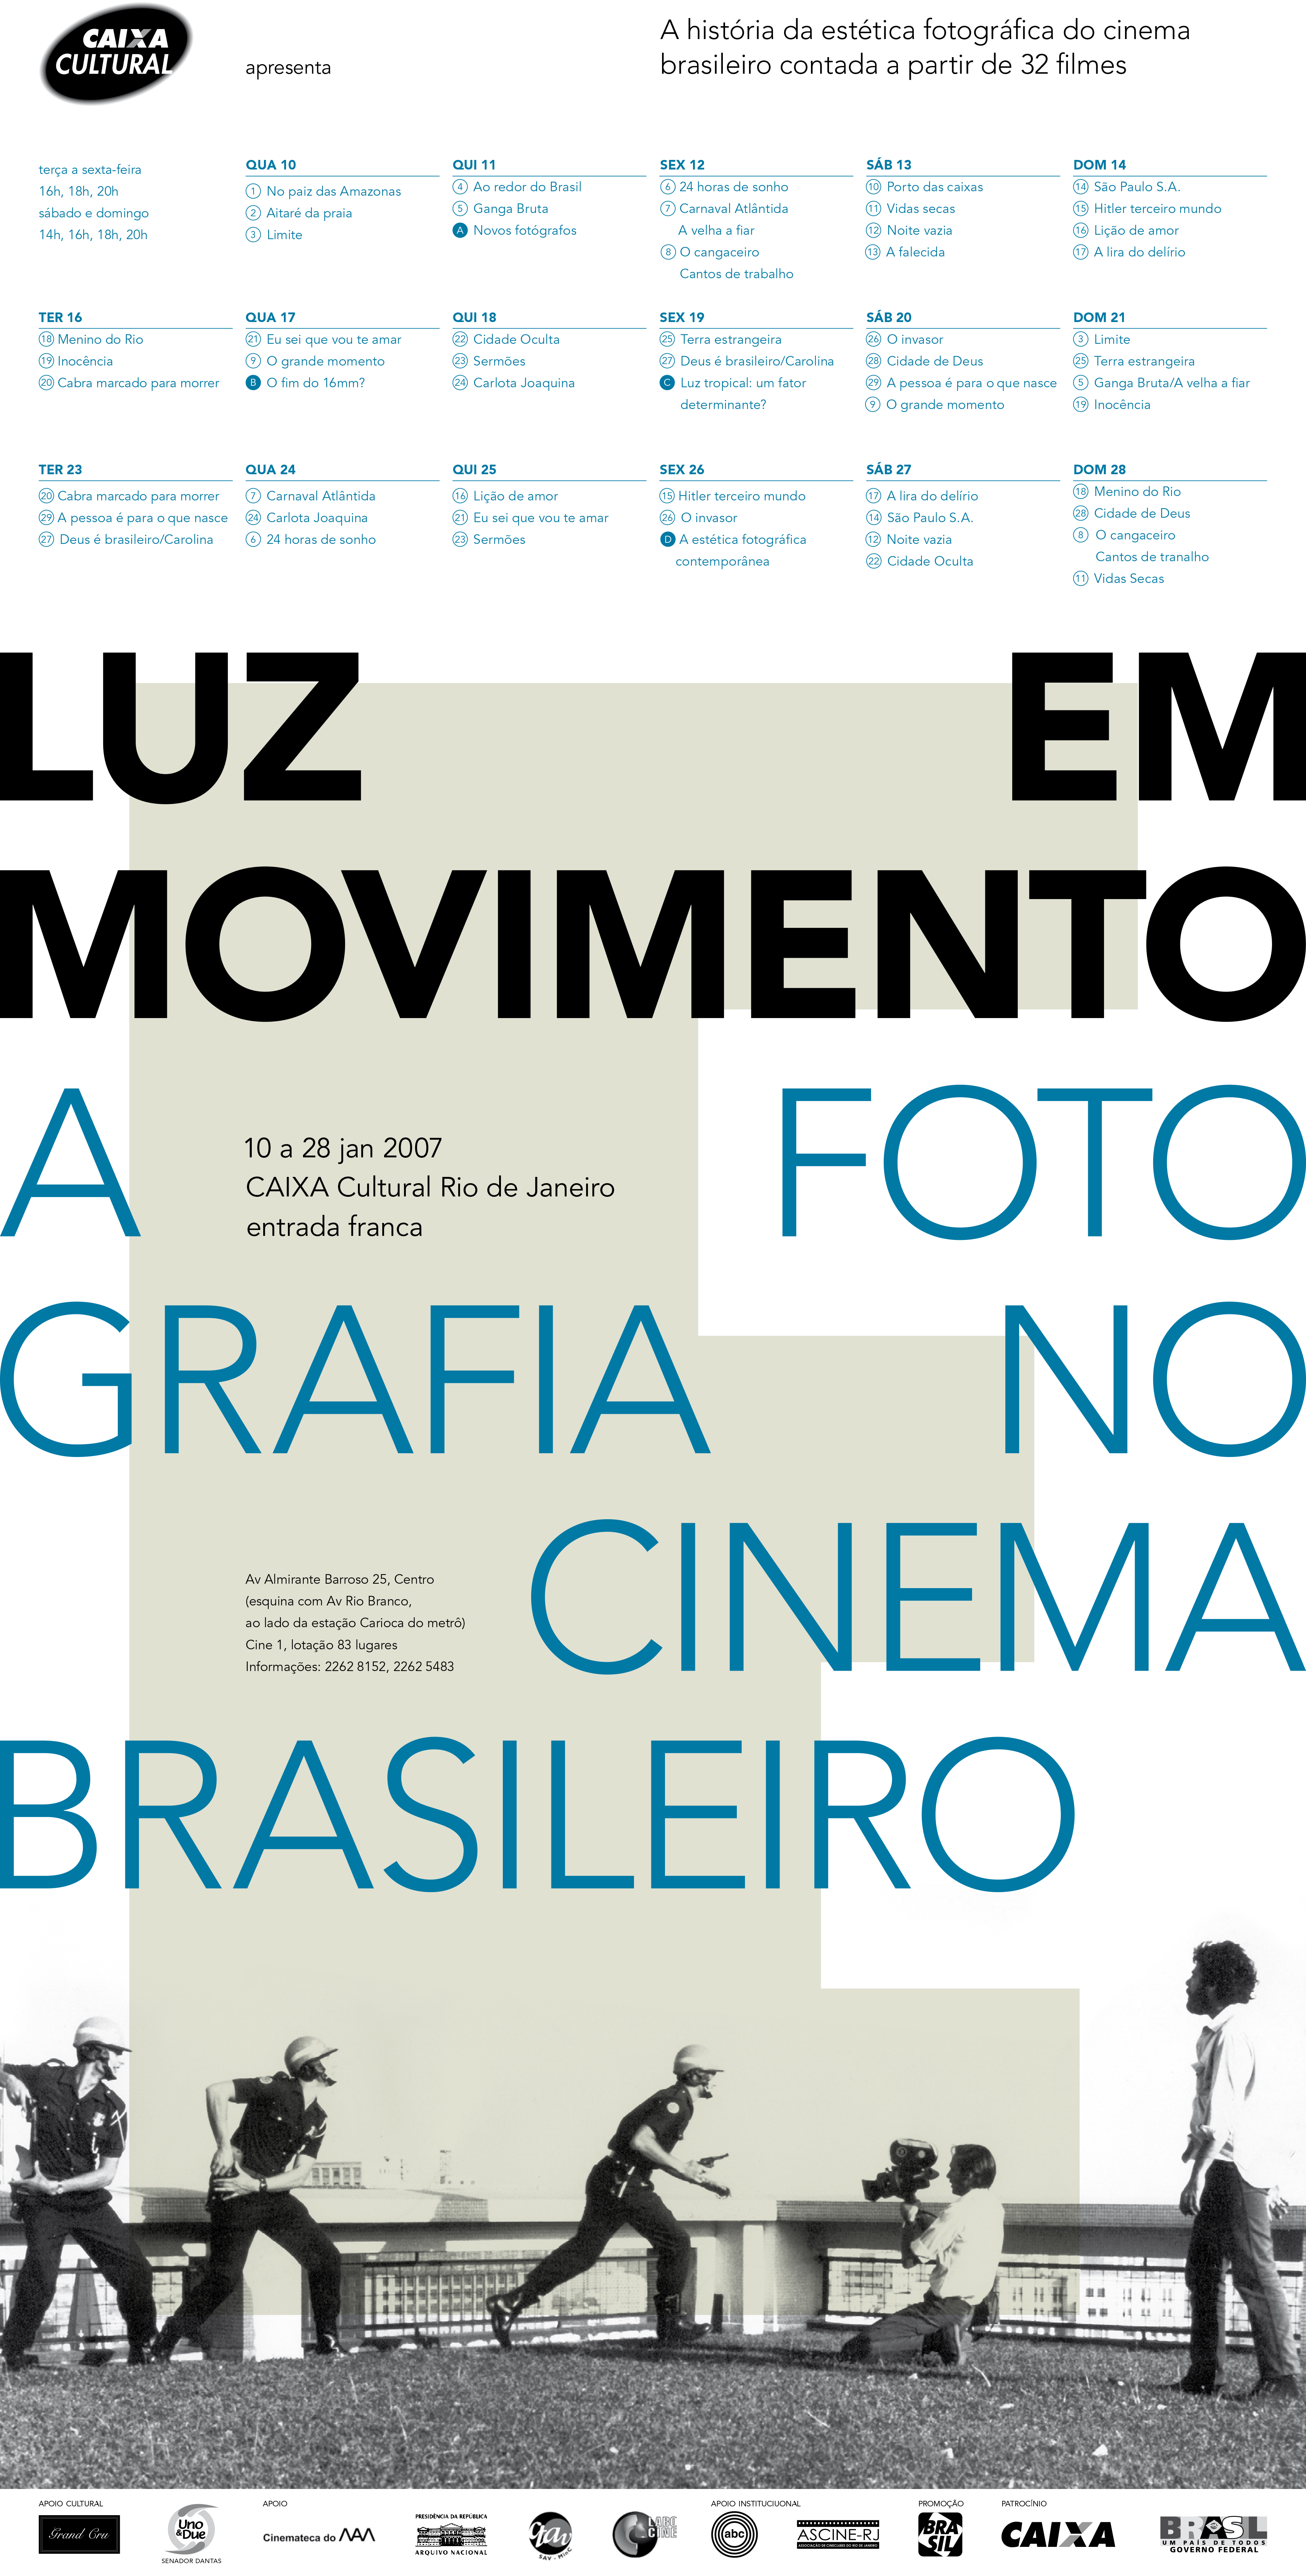 Cartaz/folder | Layout Thiago Lacaz